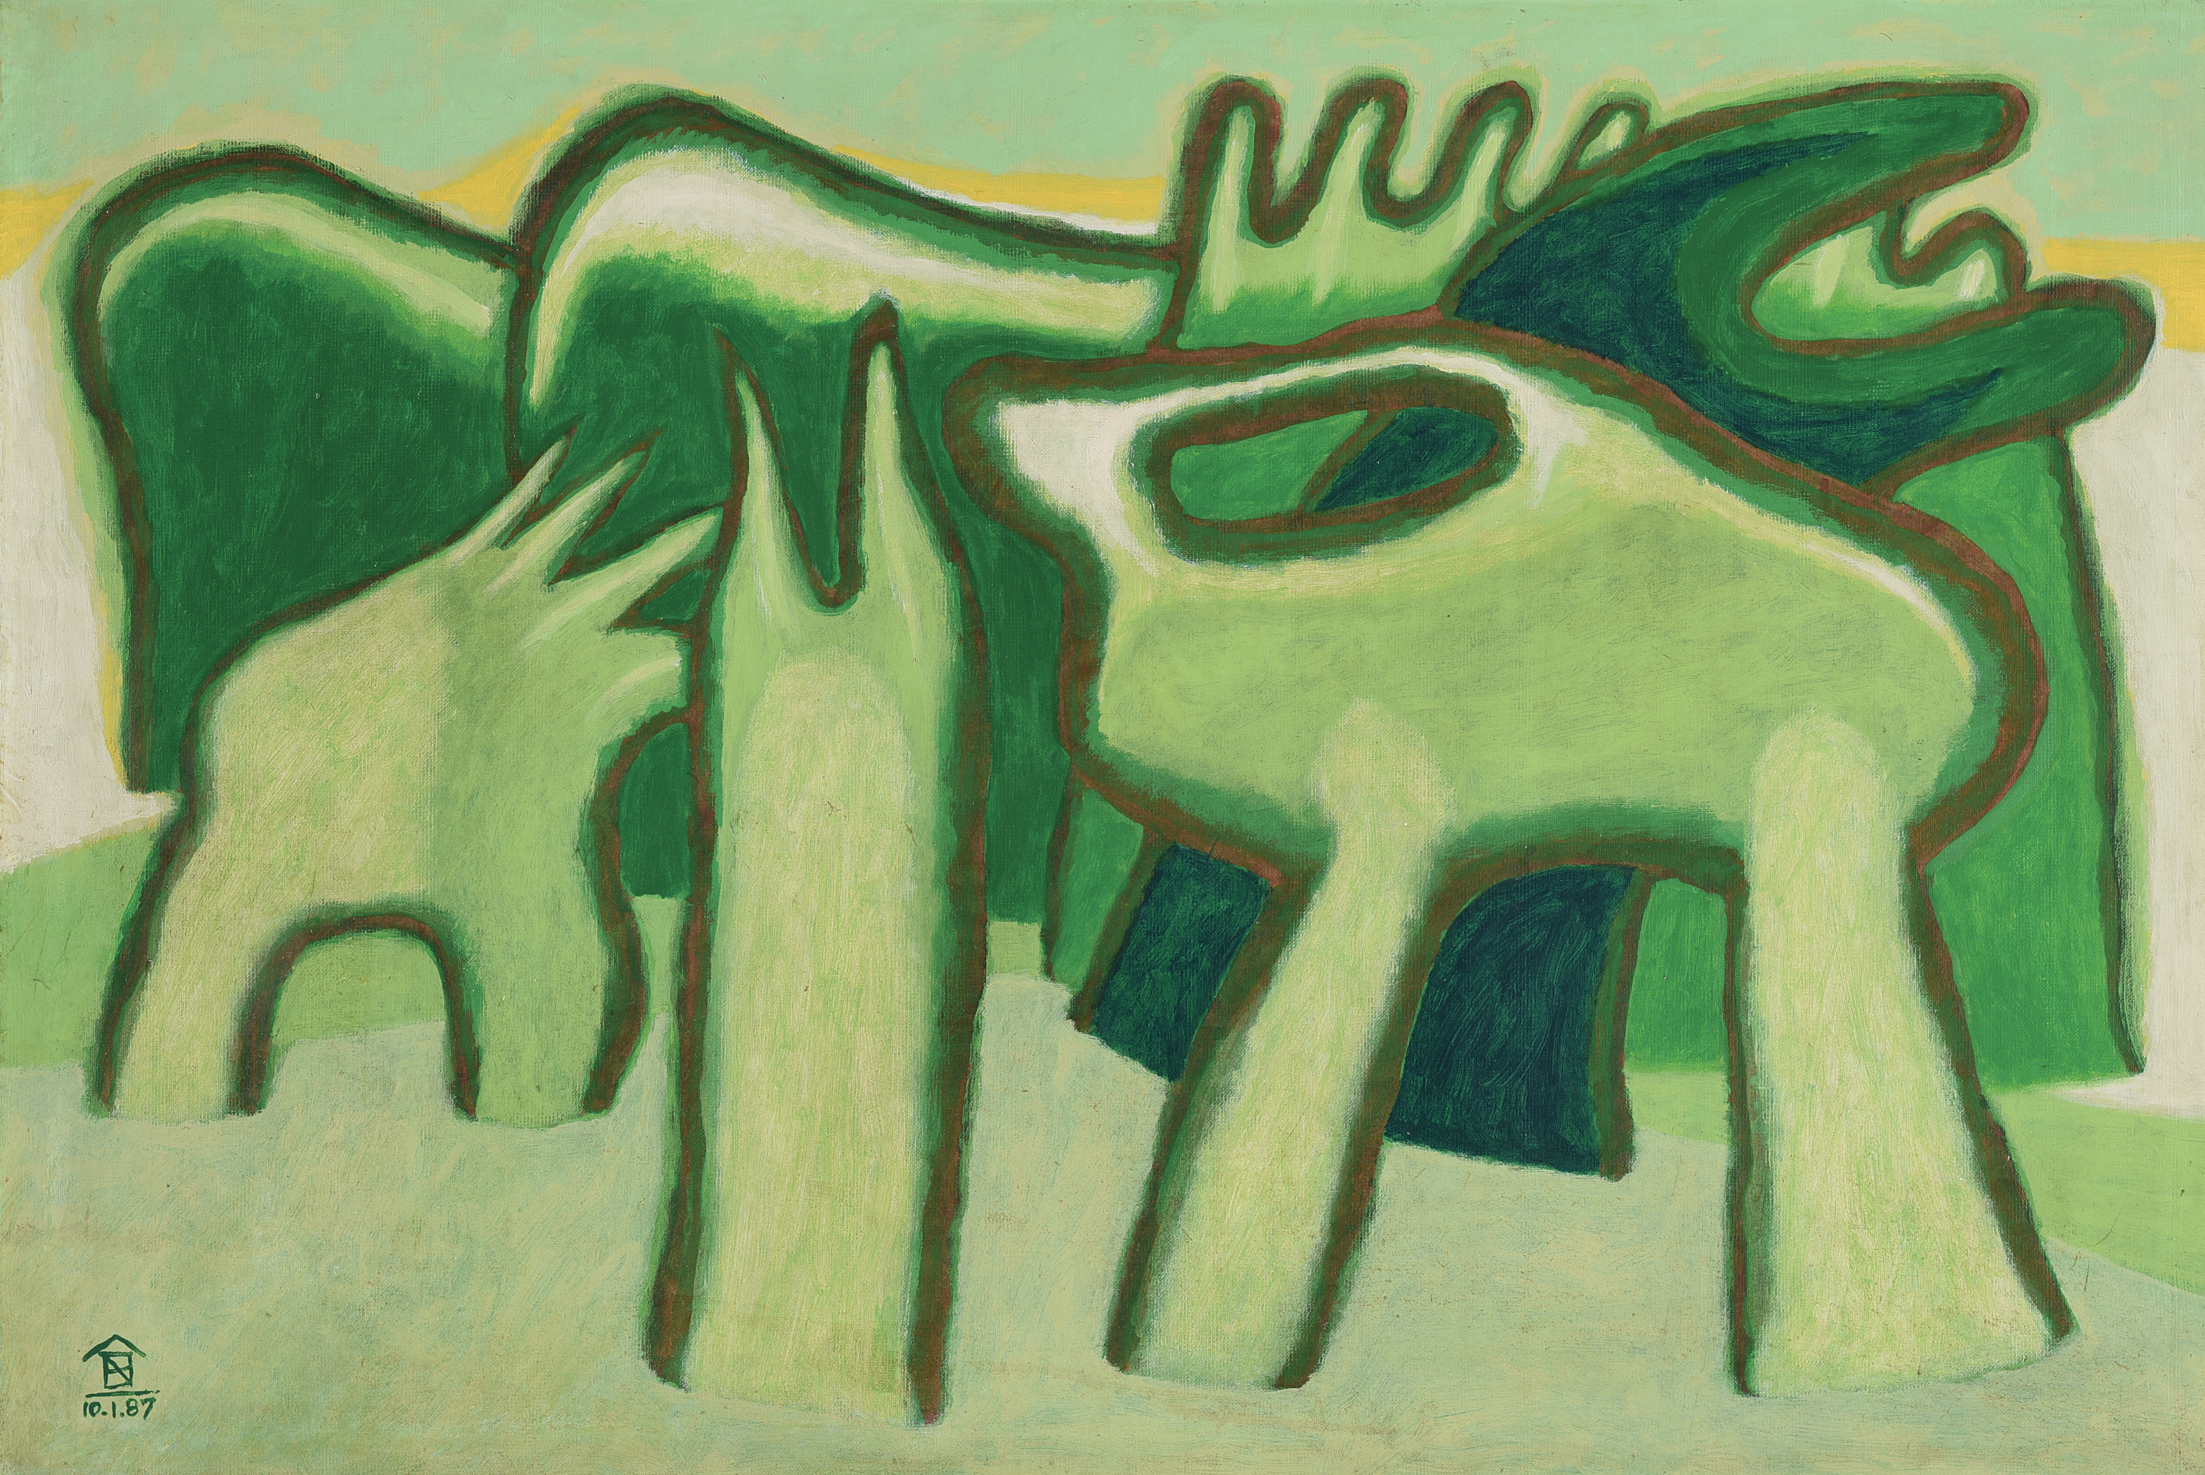 Nashar, Green Rhythm, oil on canvas, 64 x 94 cm, 1987